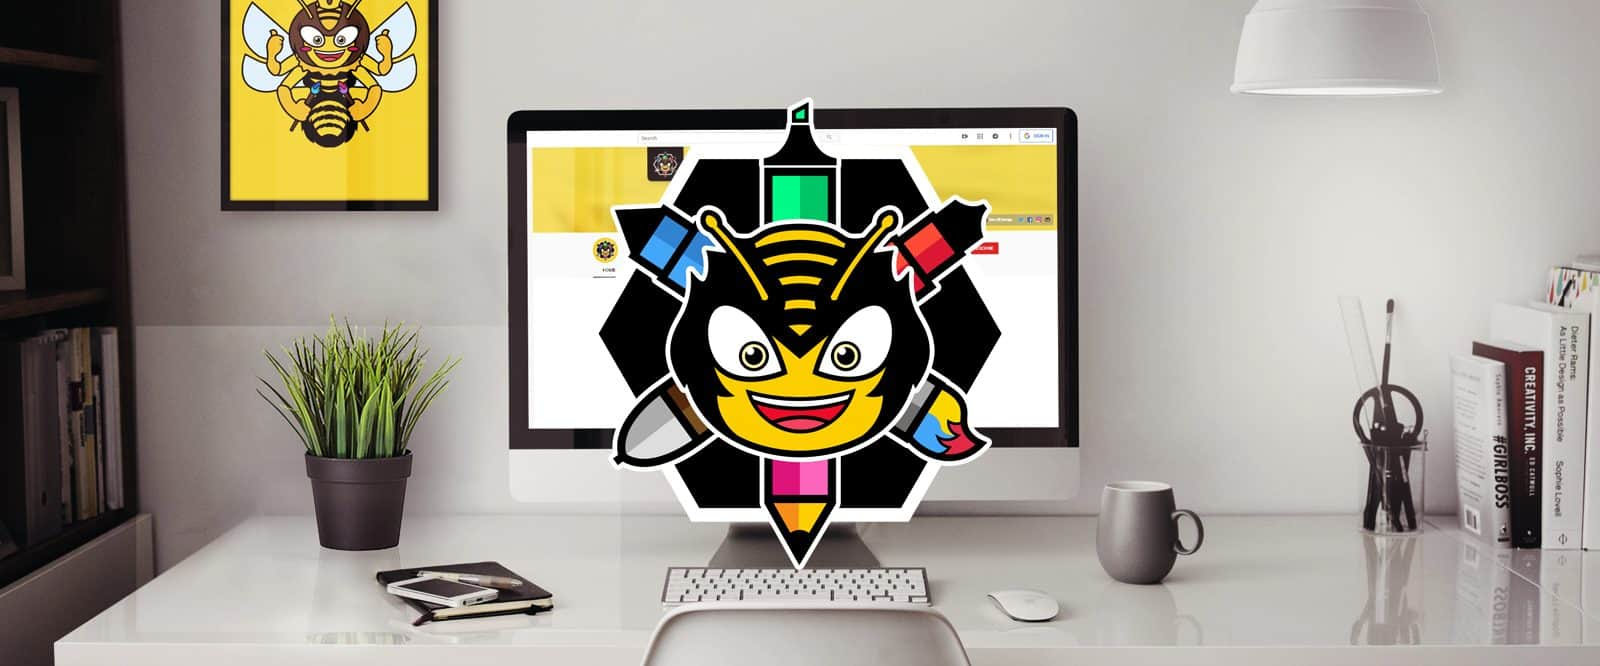 Why Bee All Design is the Best Design Service in the Market?